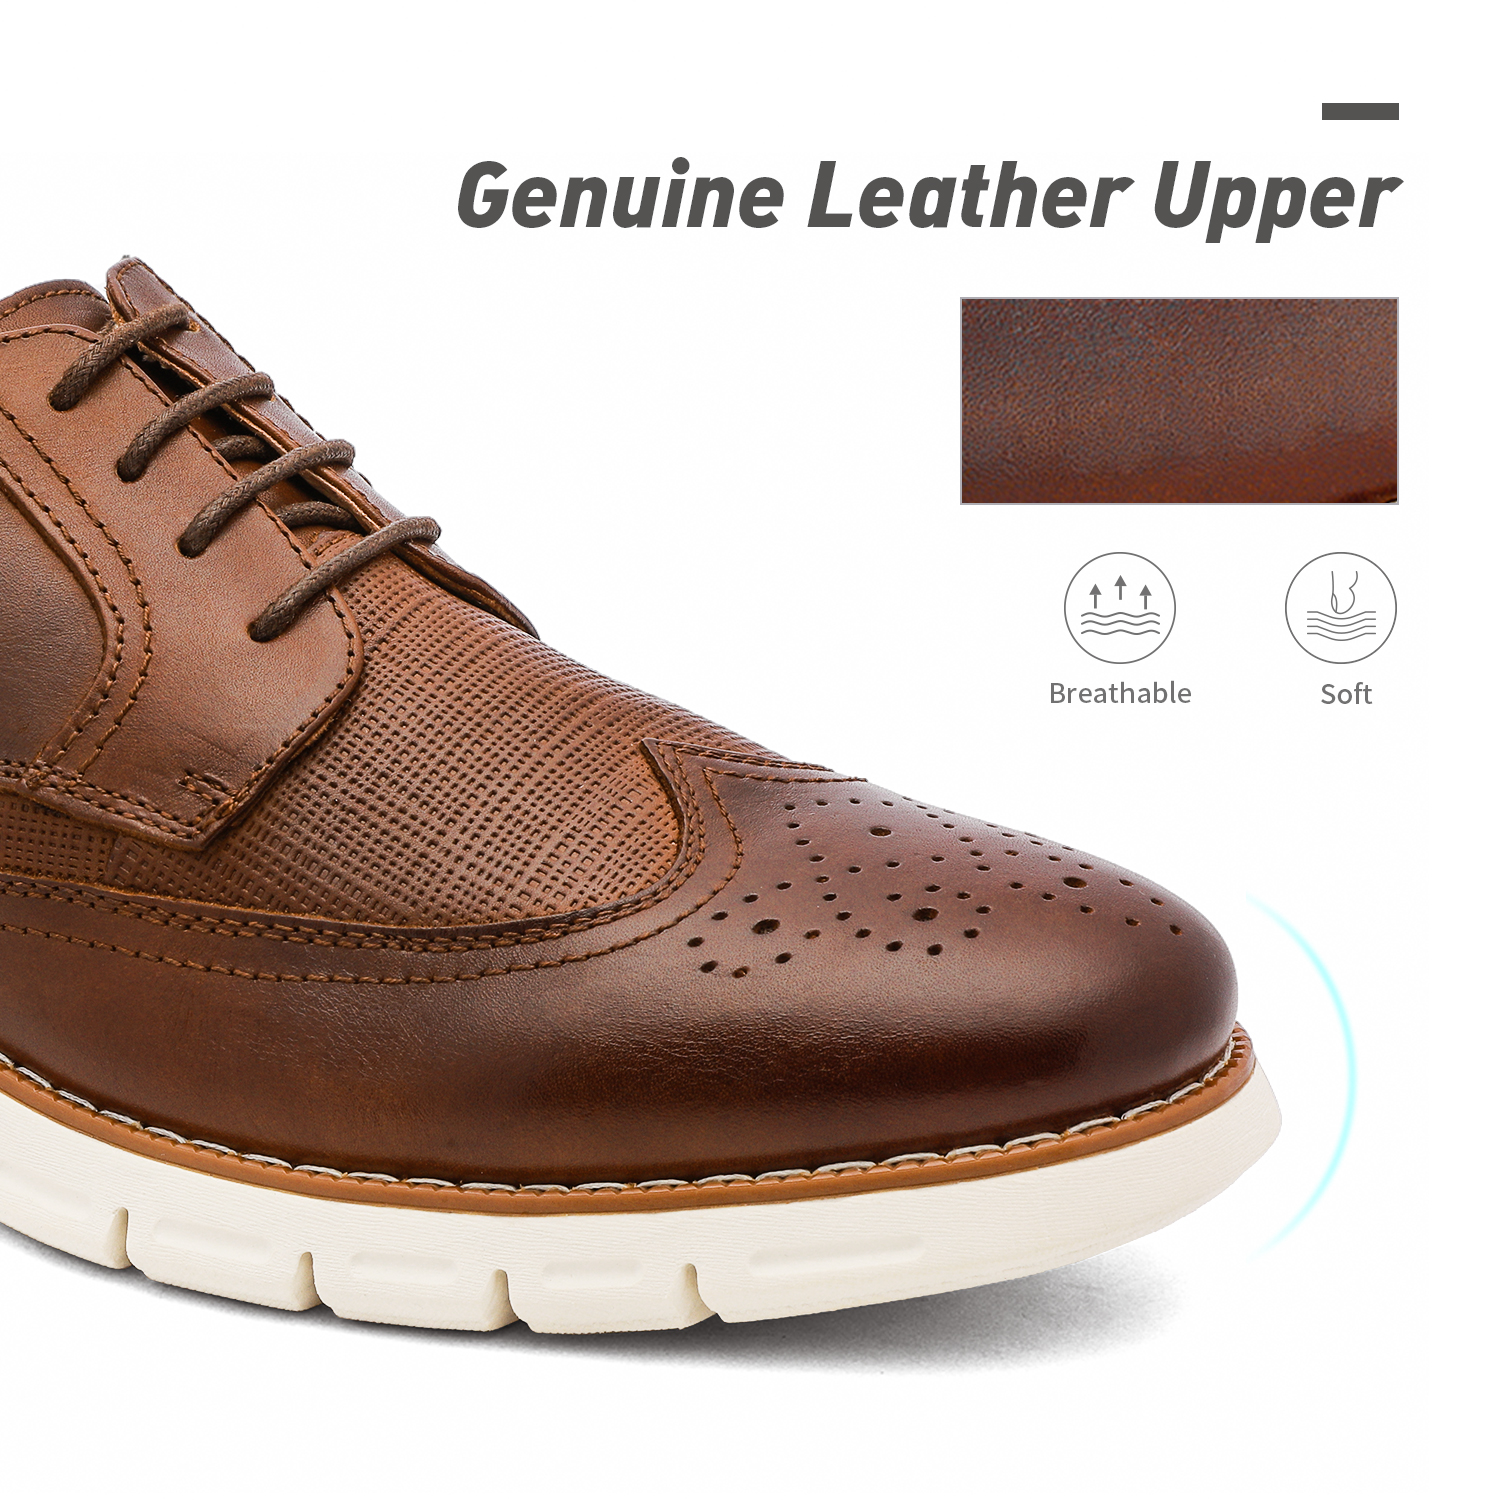 Men-s-Genuine-Leather-Casual-Formal-Sneakers-Lace-up-Business-Oxford-Dress-Shoes thumbnail 28